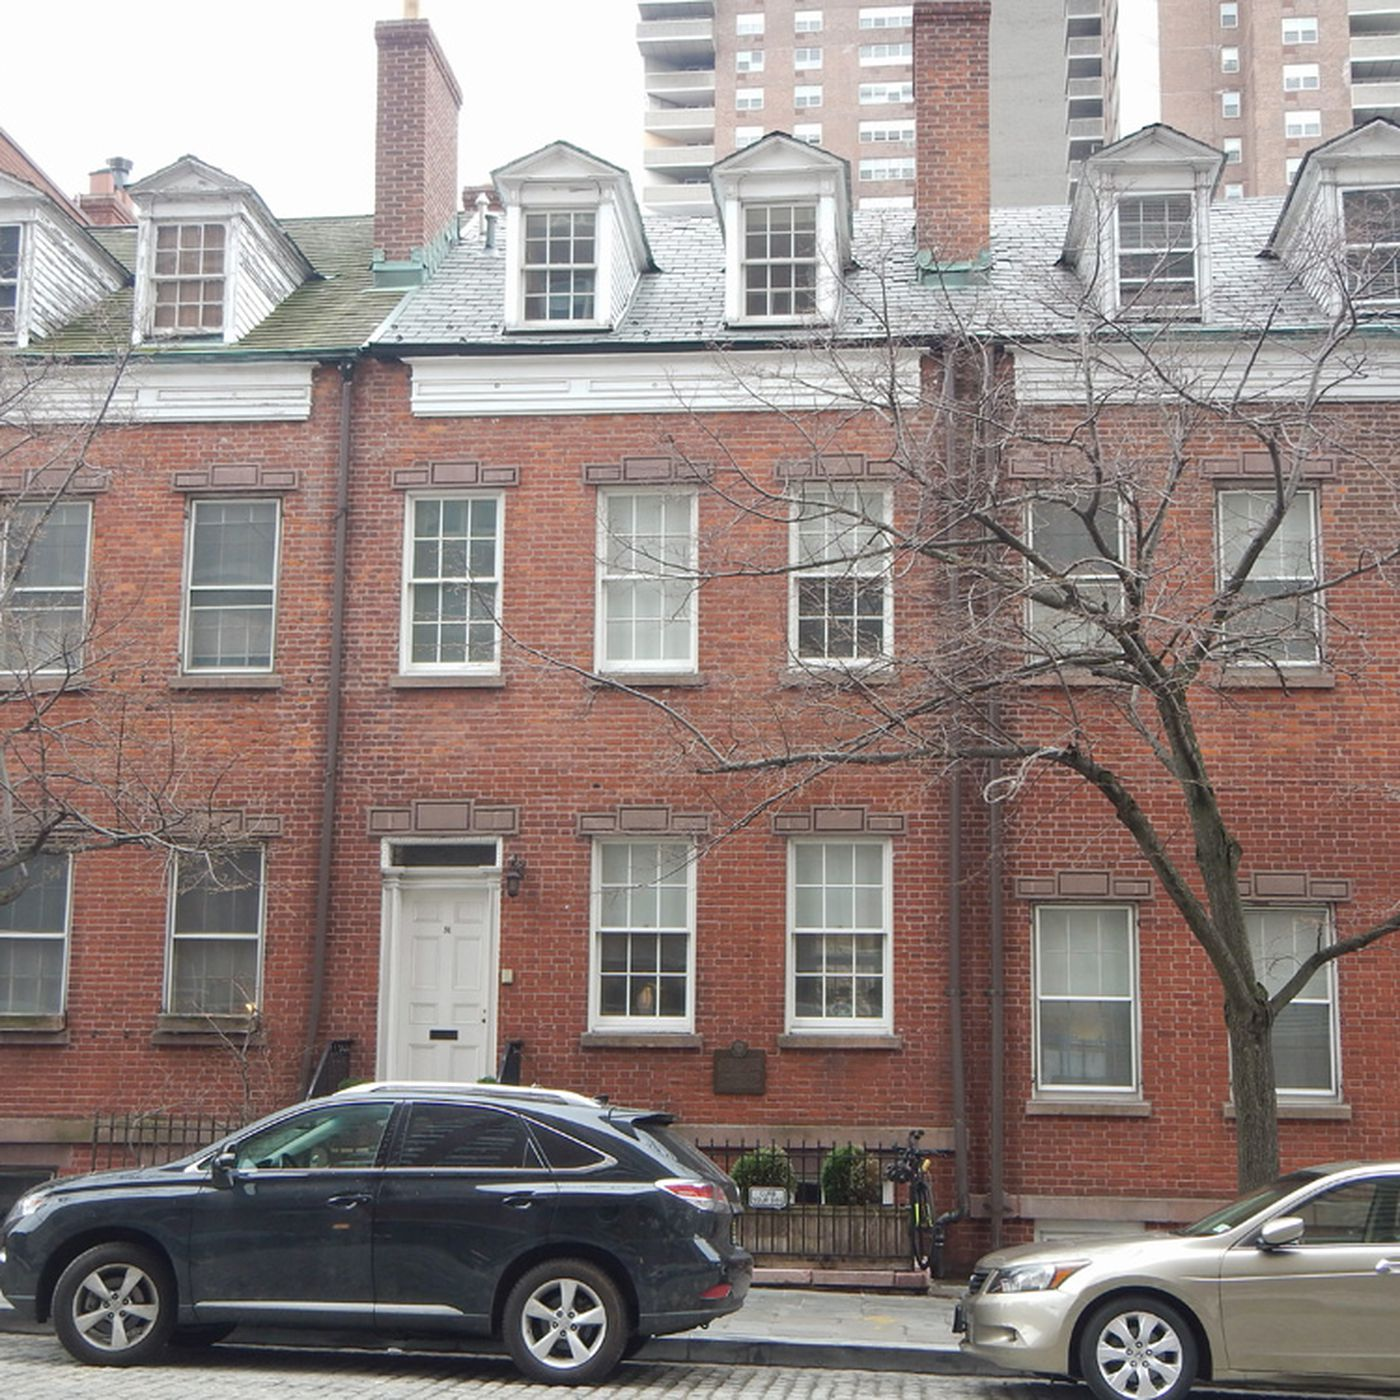 68d863110b How Some of NYC s First Landmarked Buildings Became Rubble - Curbed